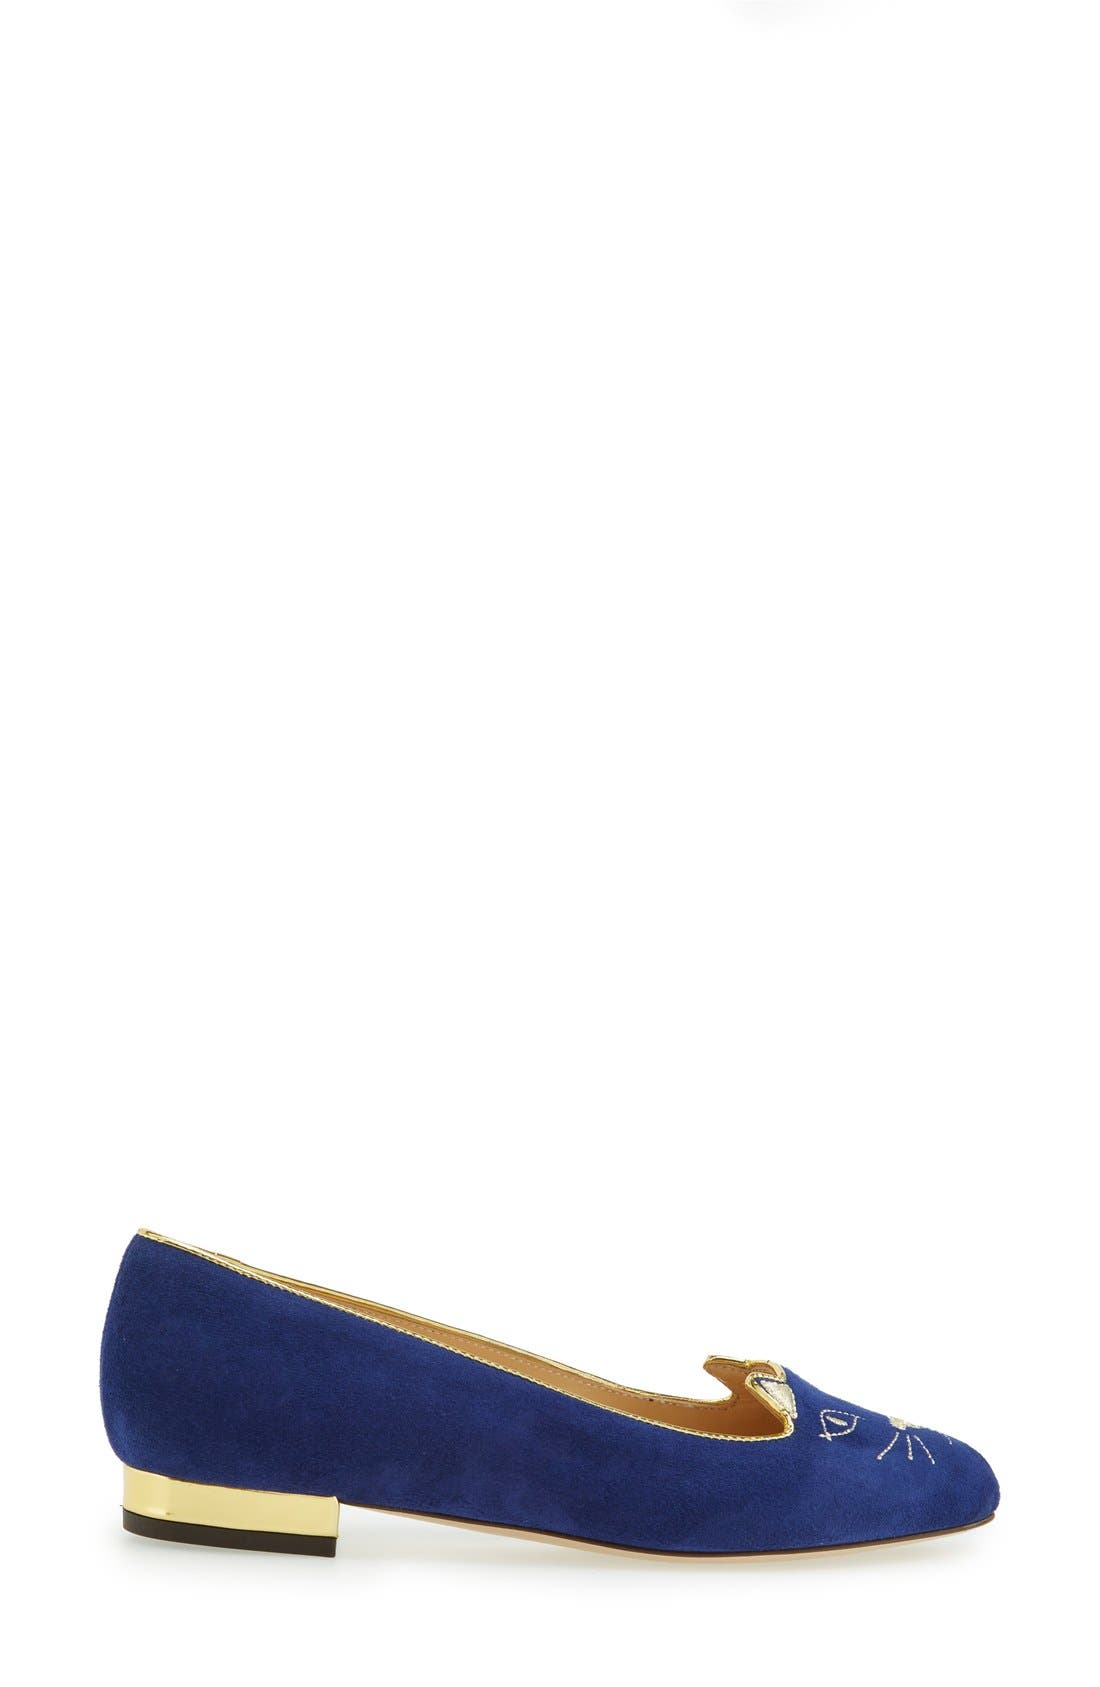 Alternate Image 3  - Charlotte Olympia 'Kitty' Suede Flat (Nordstrom Exclusive)